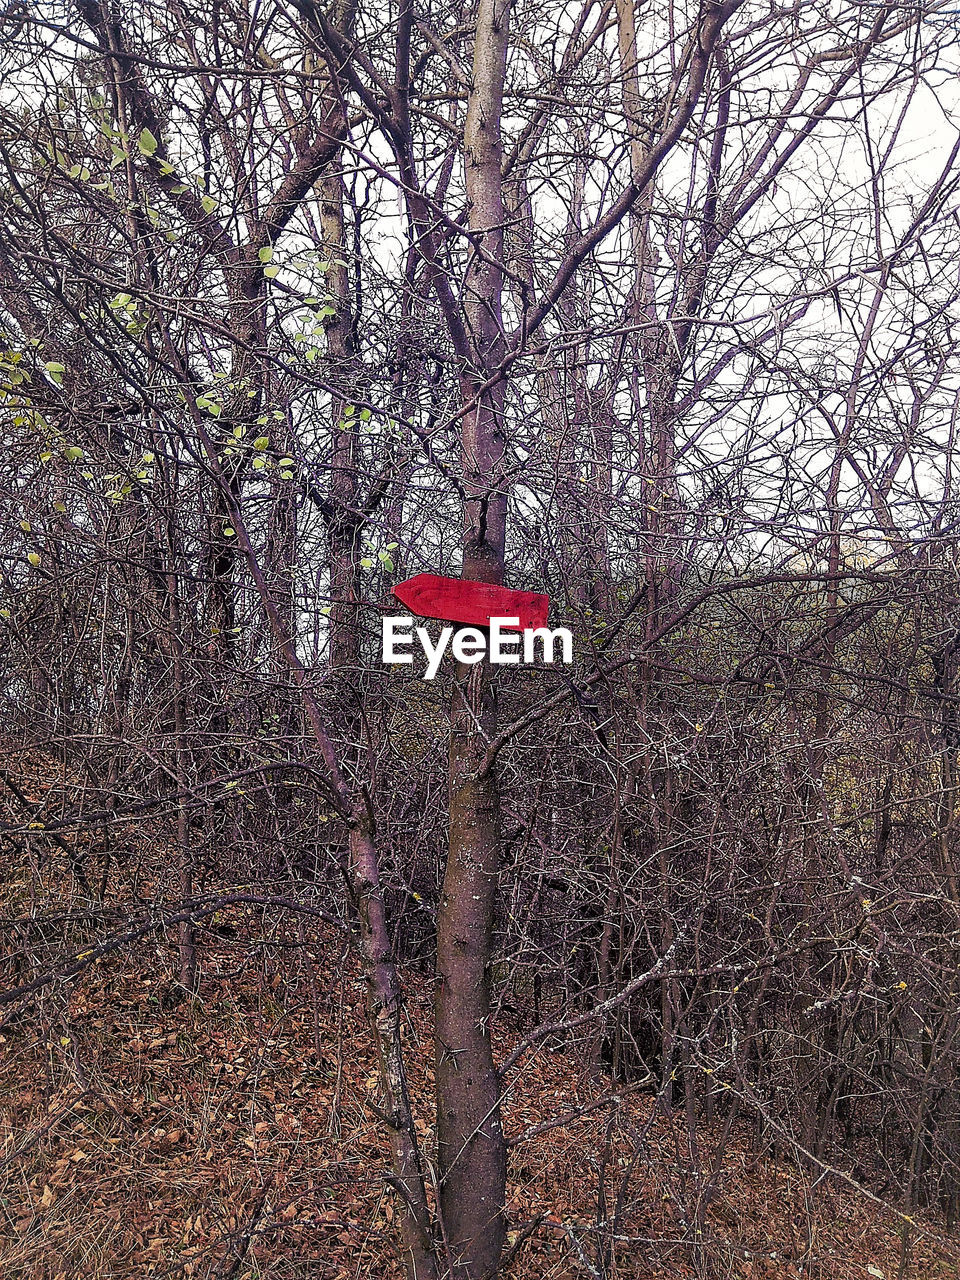 tree, bare tree, red, branch, tree trunk, no people, forest, day, outdoors, nature, growth, beauty in nature, forest fire